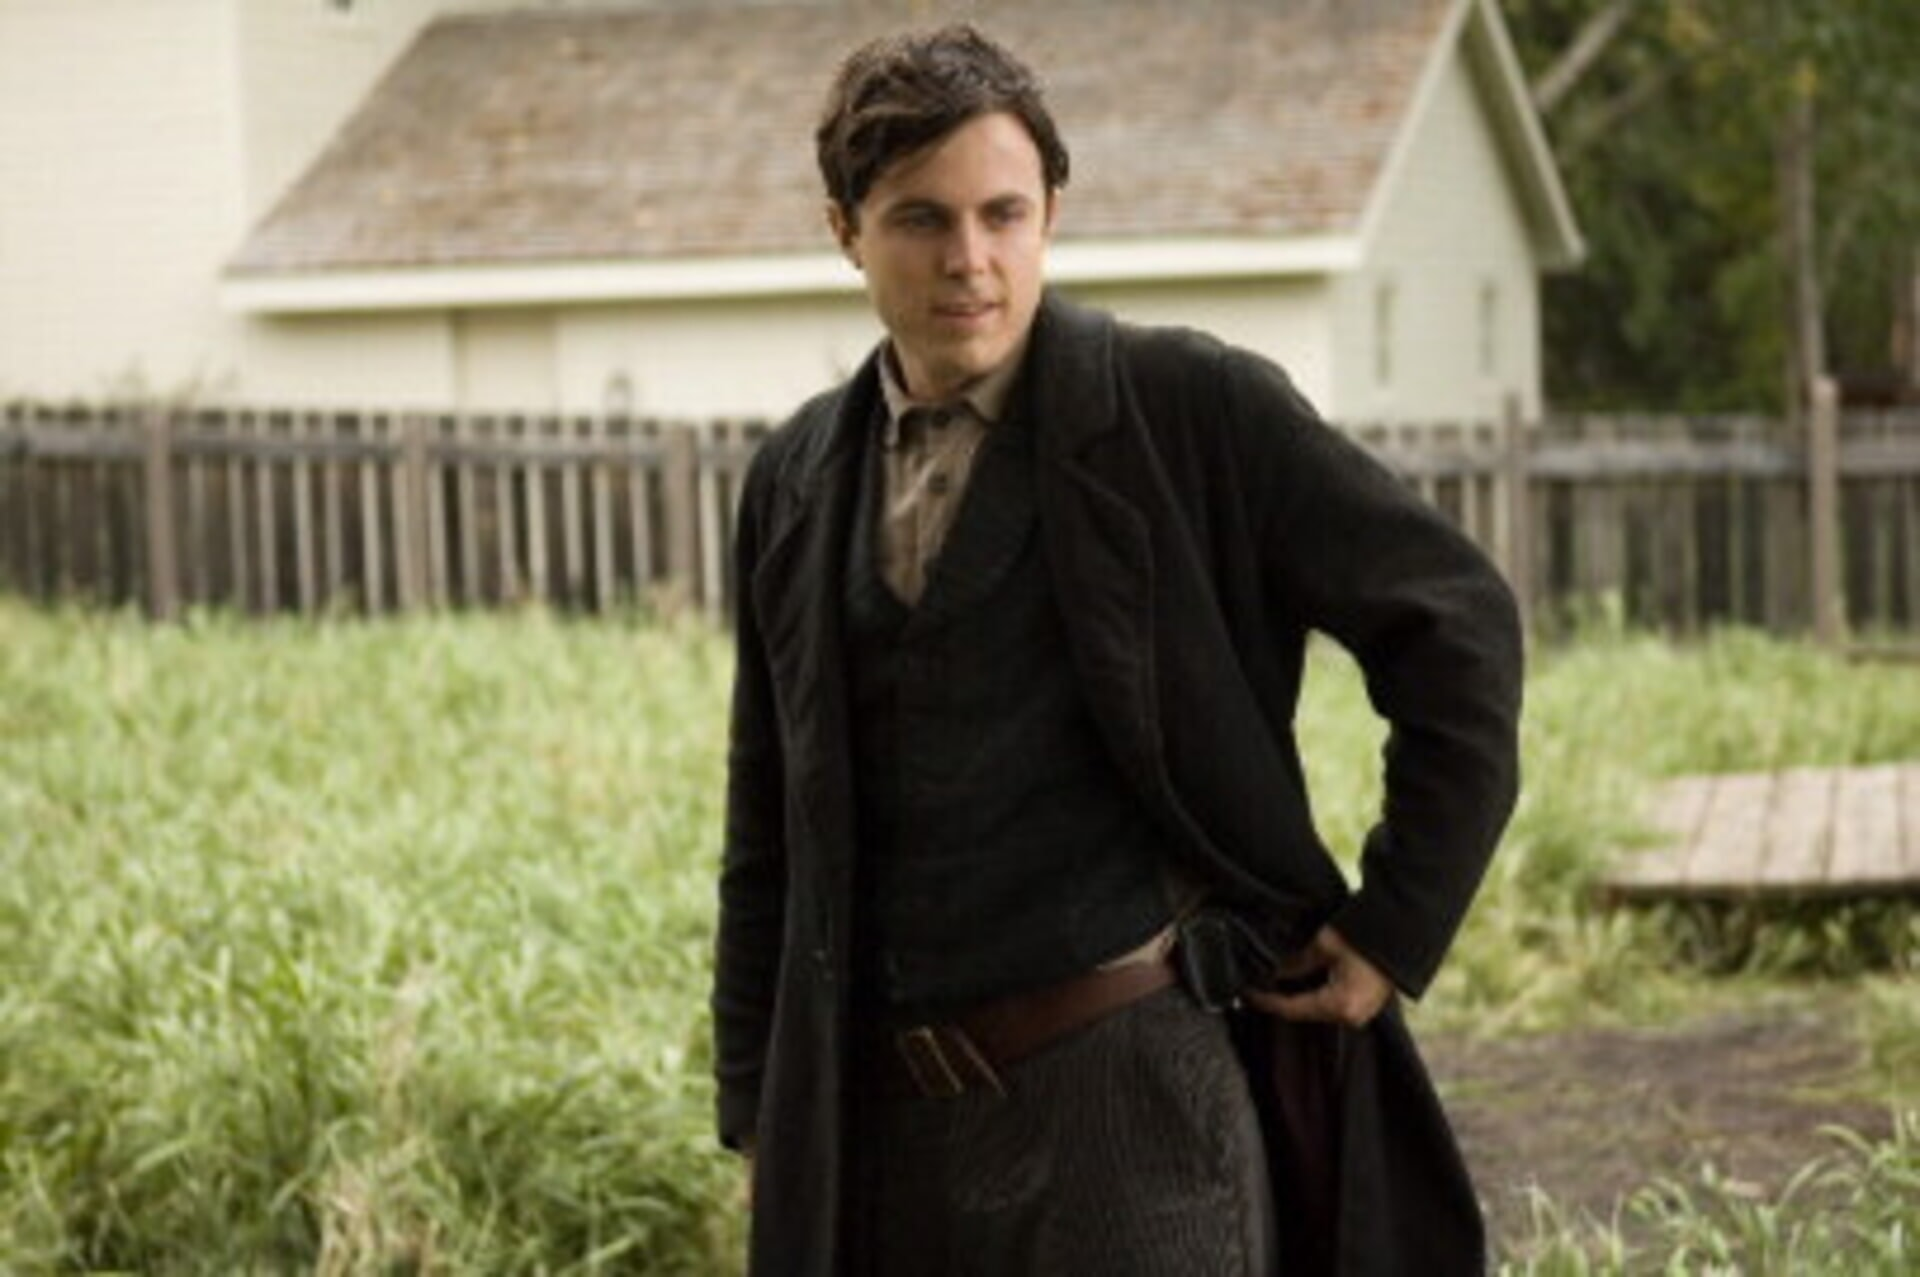 The Assassination of Jesse James by the Coward Robert Ford - Image 11